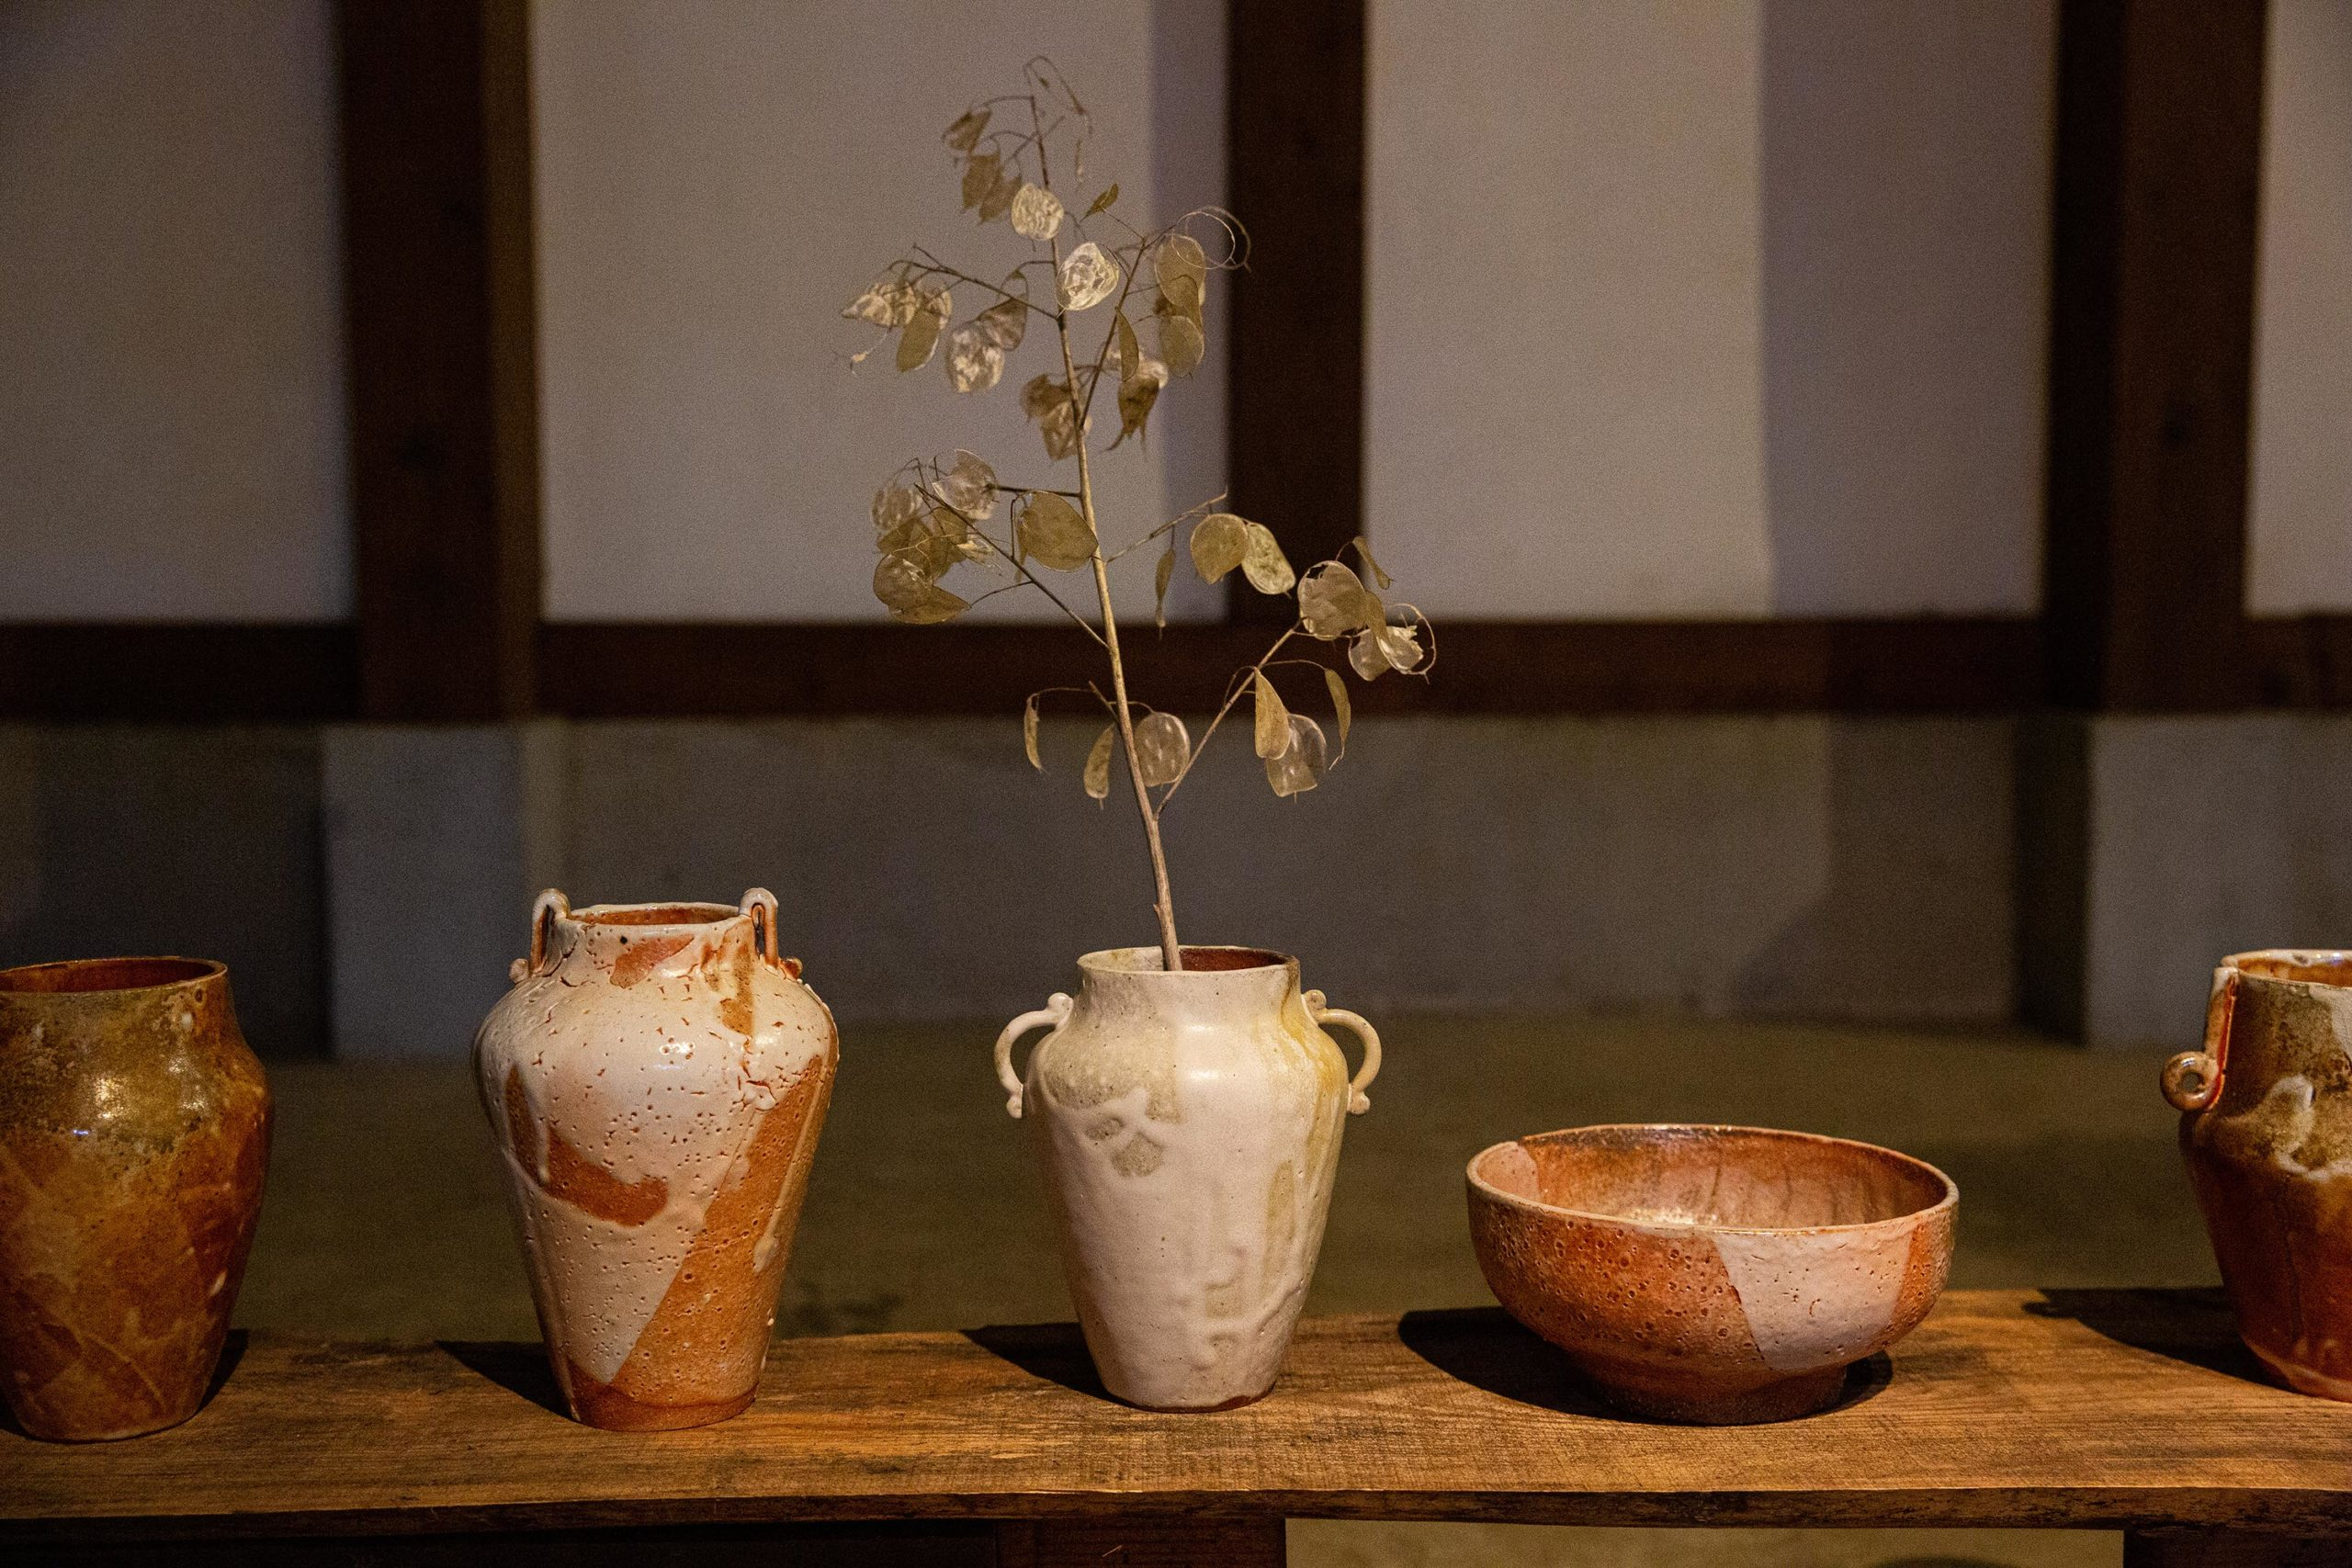 Sophie-Eveleigh anagama-fired vases art exhibition in Japan